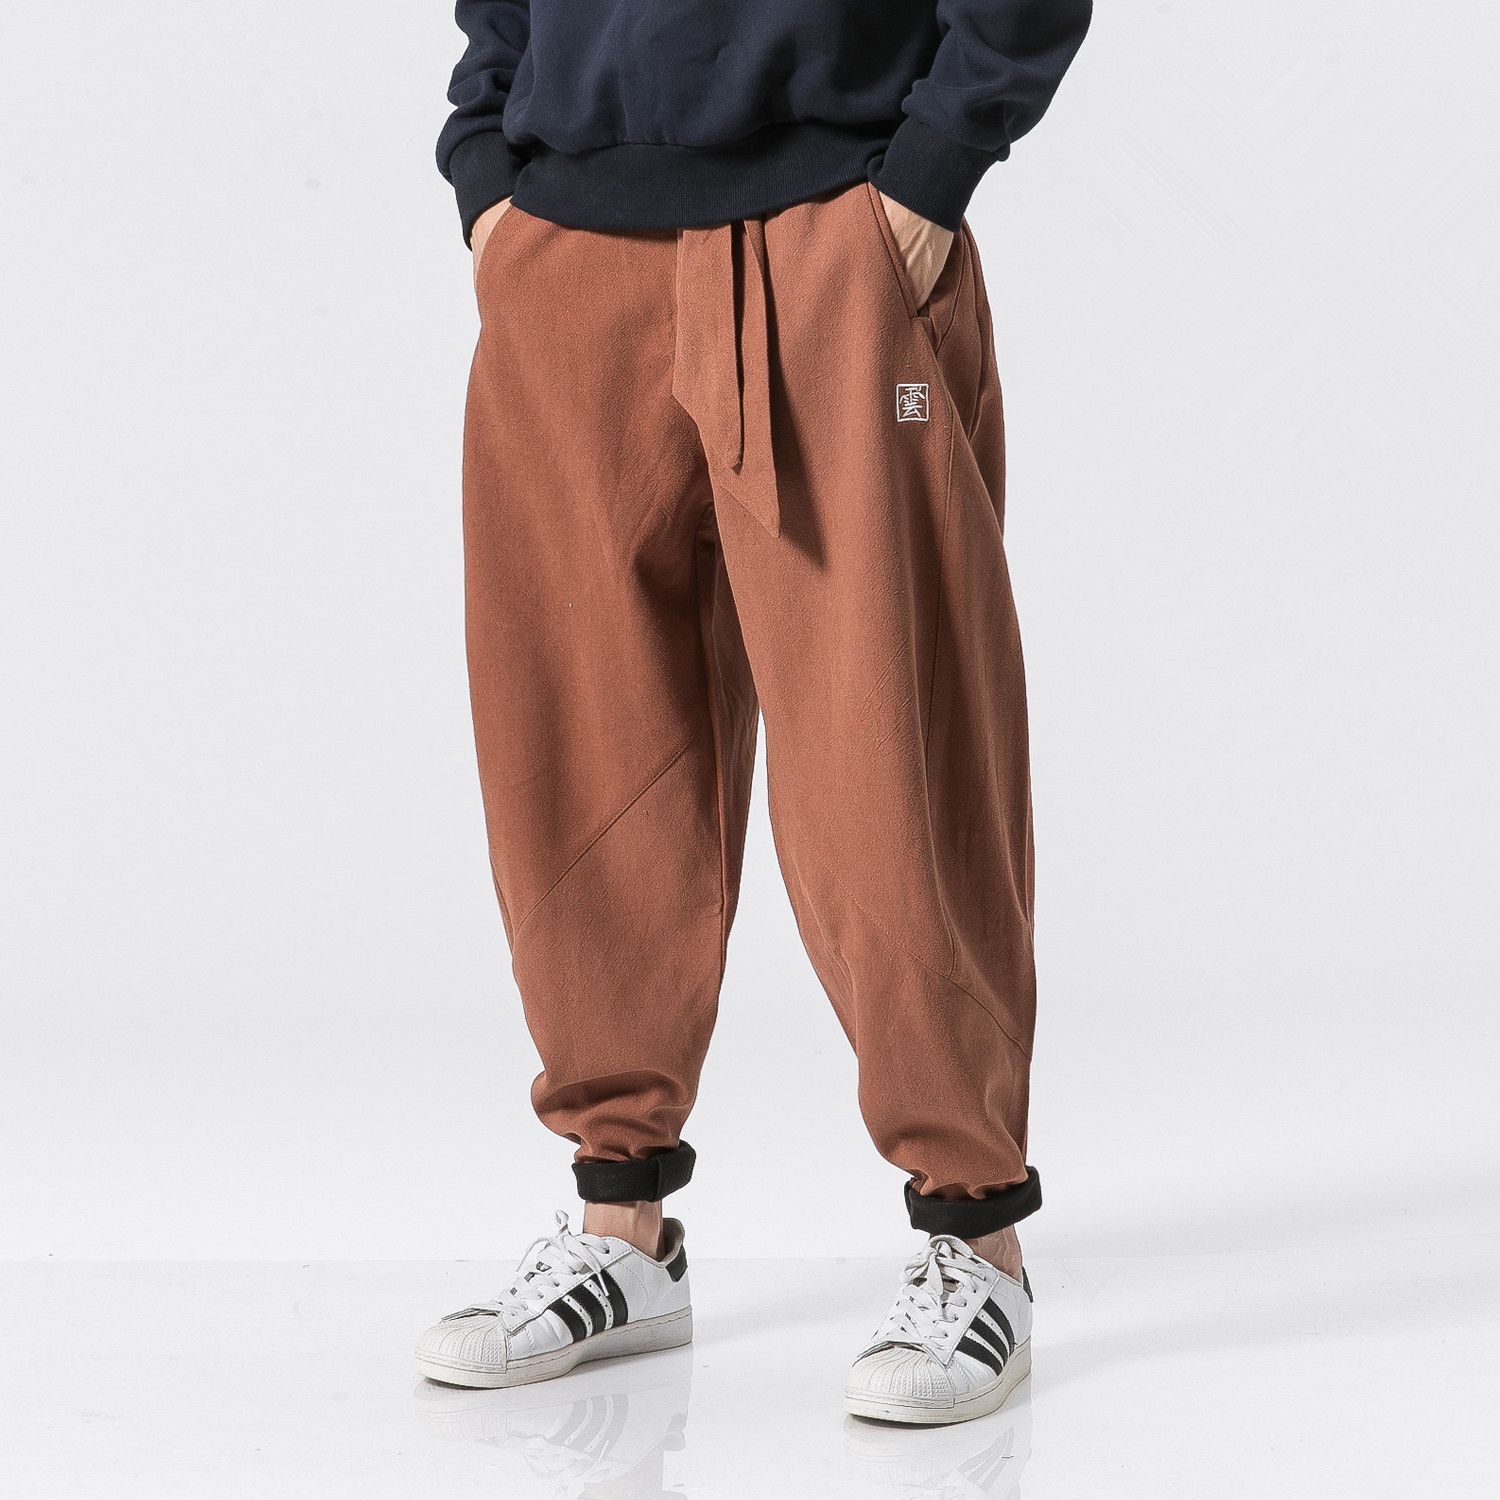 Linen Cotton Pants Men 2017 Winter Fleece Warm Pants Drawstring Brand Chinese Male Linen Trouser Hip Hop Jogger Pants Men M-5XL